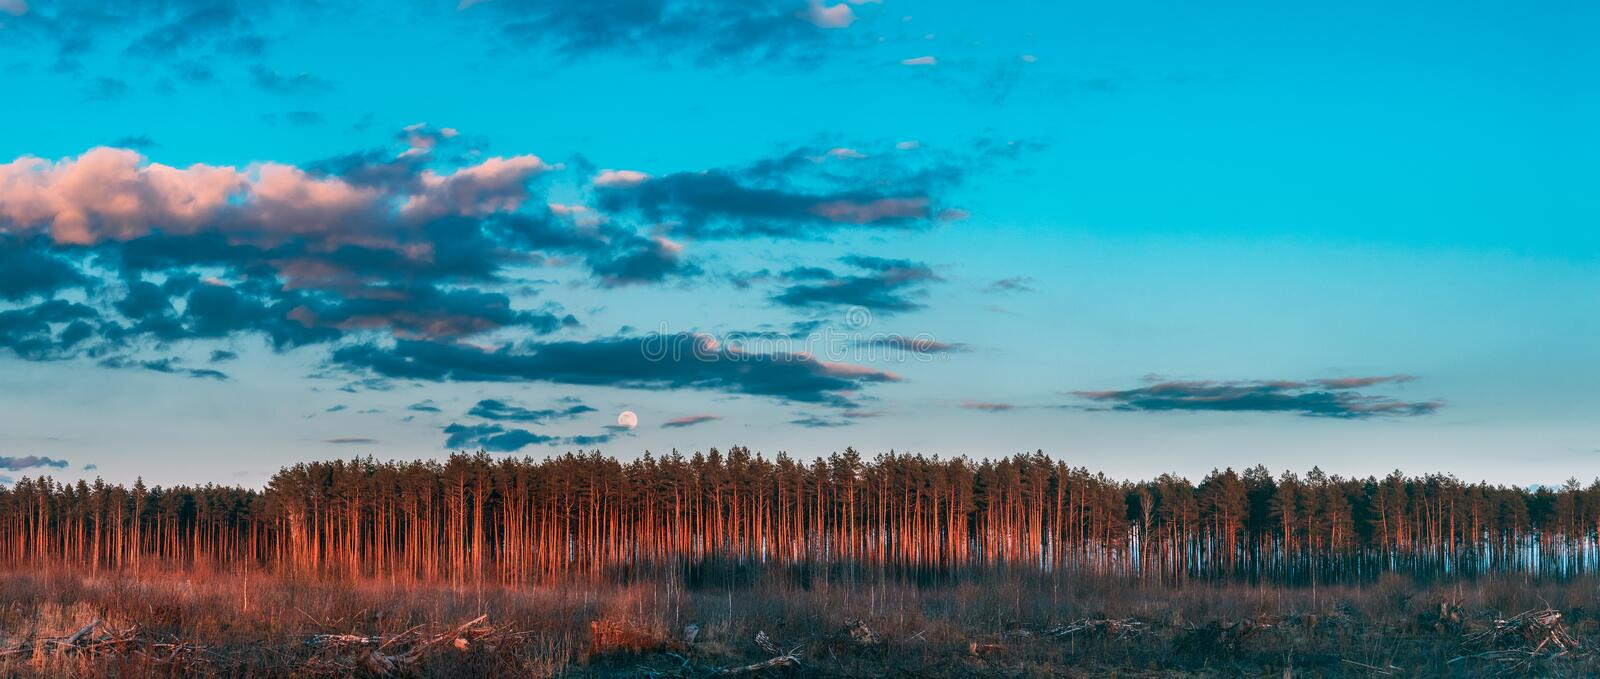 Fallen Tree Trunks And Stumps In Deforestation Area. Full Moon Rising Above Pine Forest Landscape In During Sunset Time royalty free stock photos